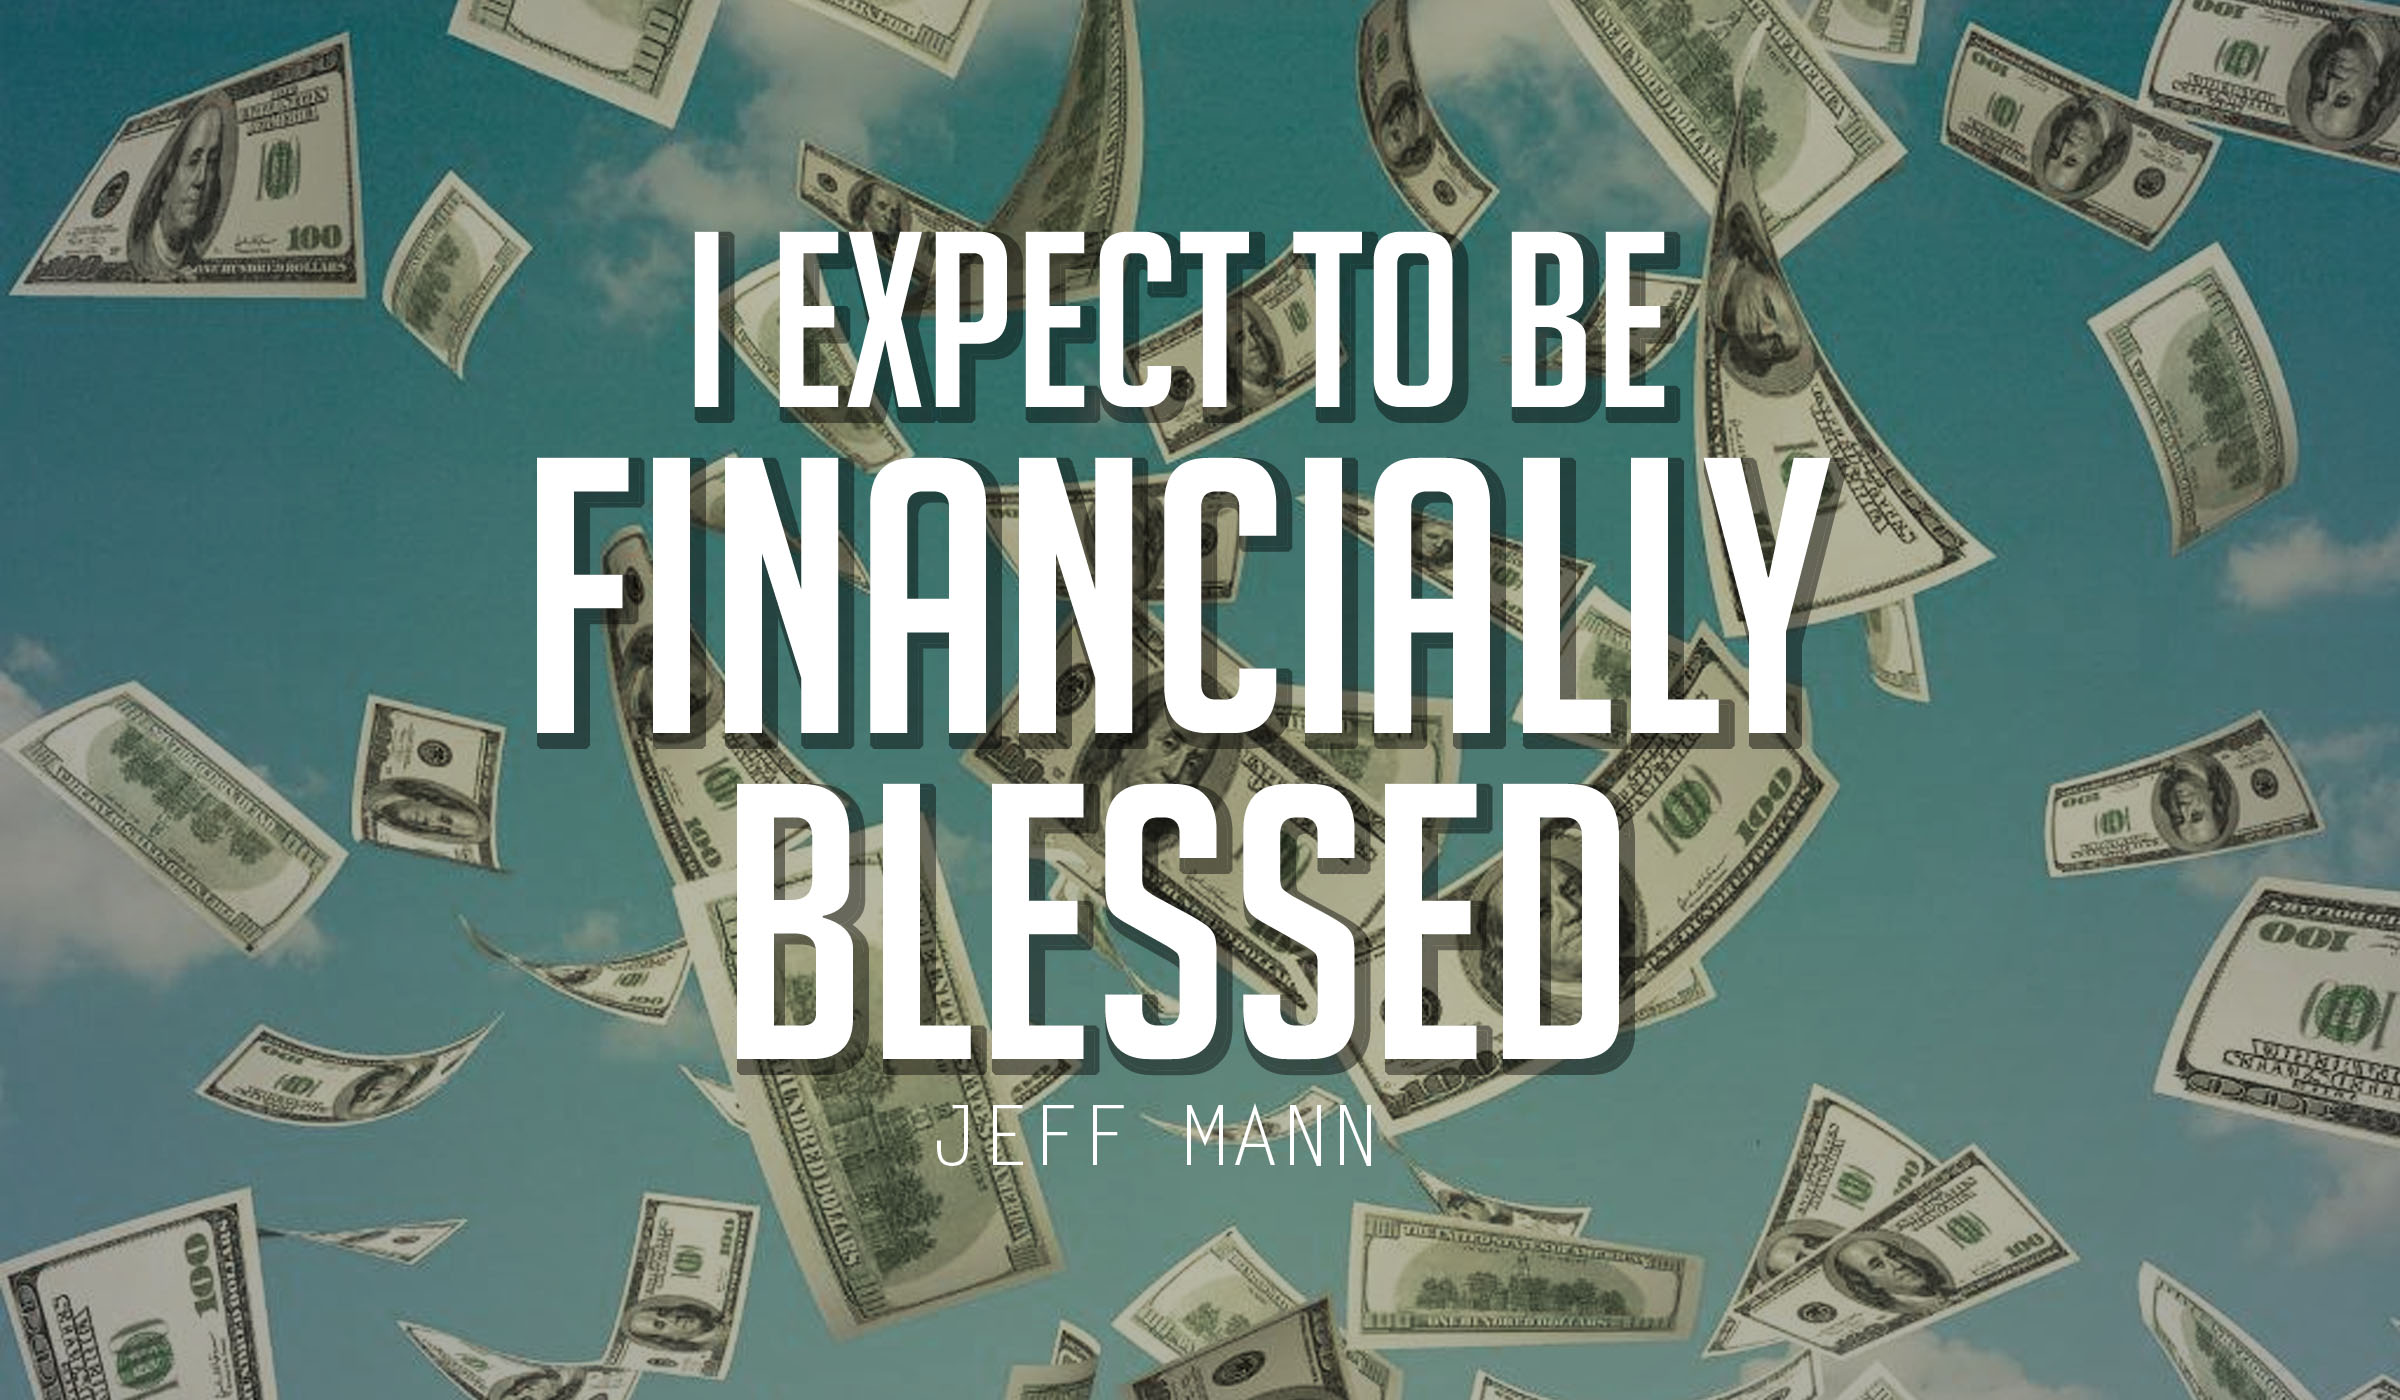 I Expect To Be Financially Blessed